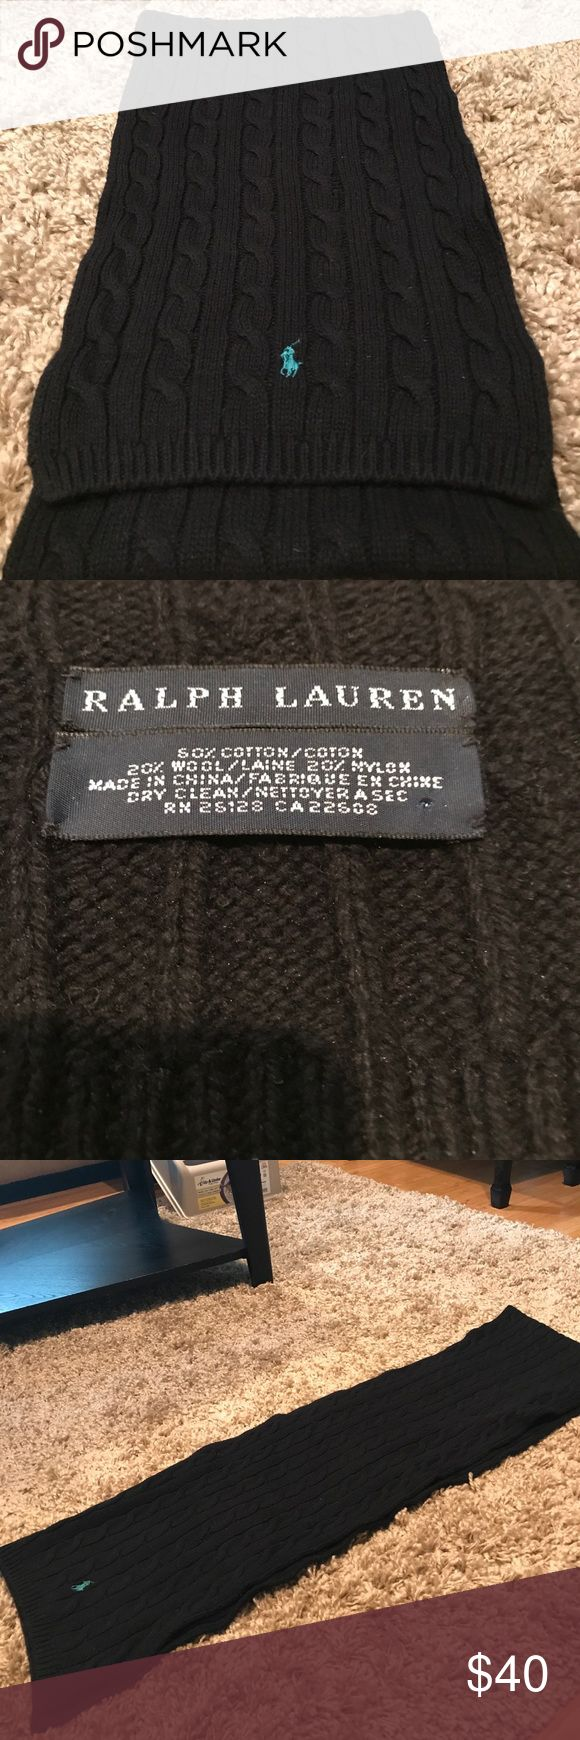 "Ralph Lauren Scarf I am not sure if it is for males or females but my client is female so I am listing it that way. Perfect condition no pulls  the width is 9.5""  the length is 70"" it is folded in half in the picture Ralph Lauren Accessories Scarves & Wraps"